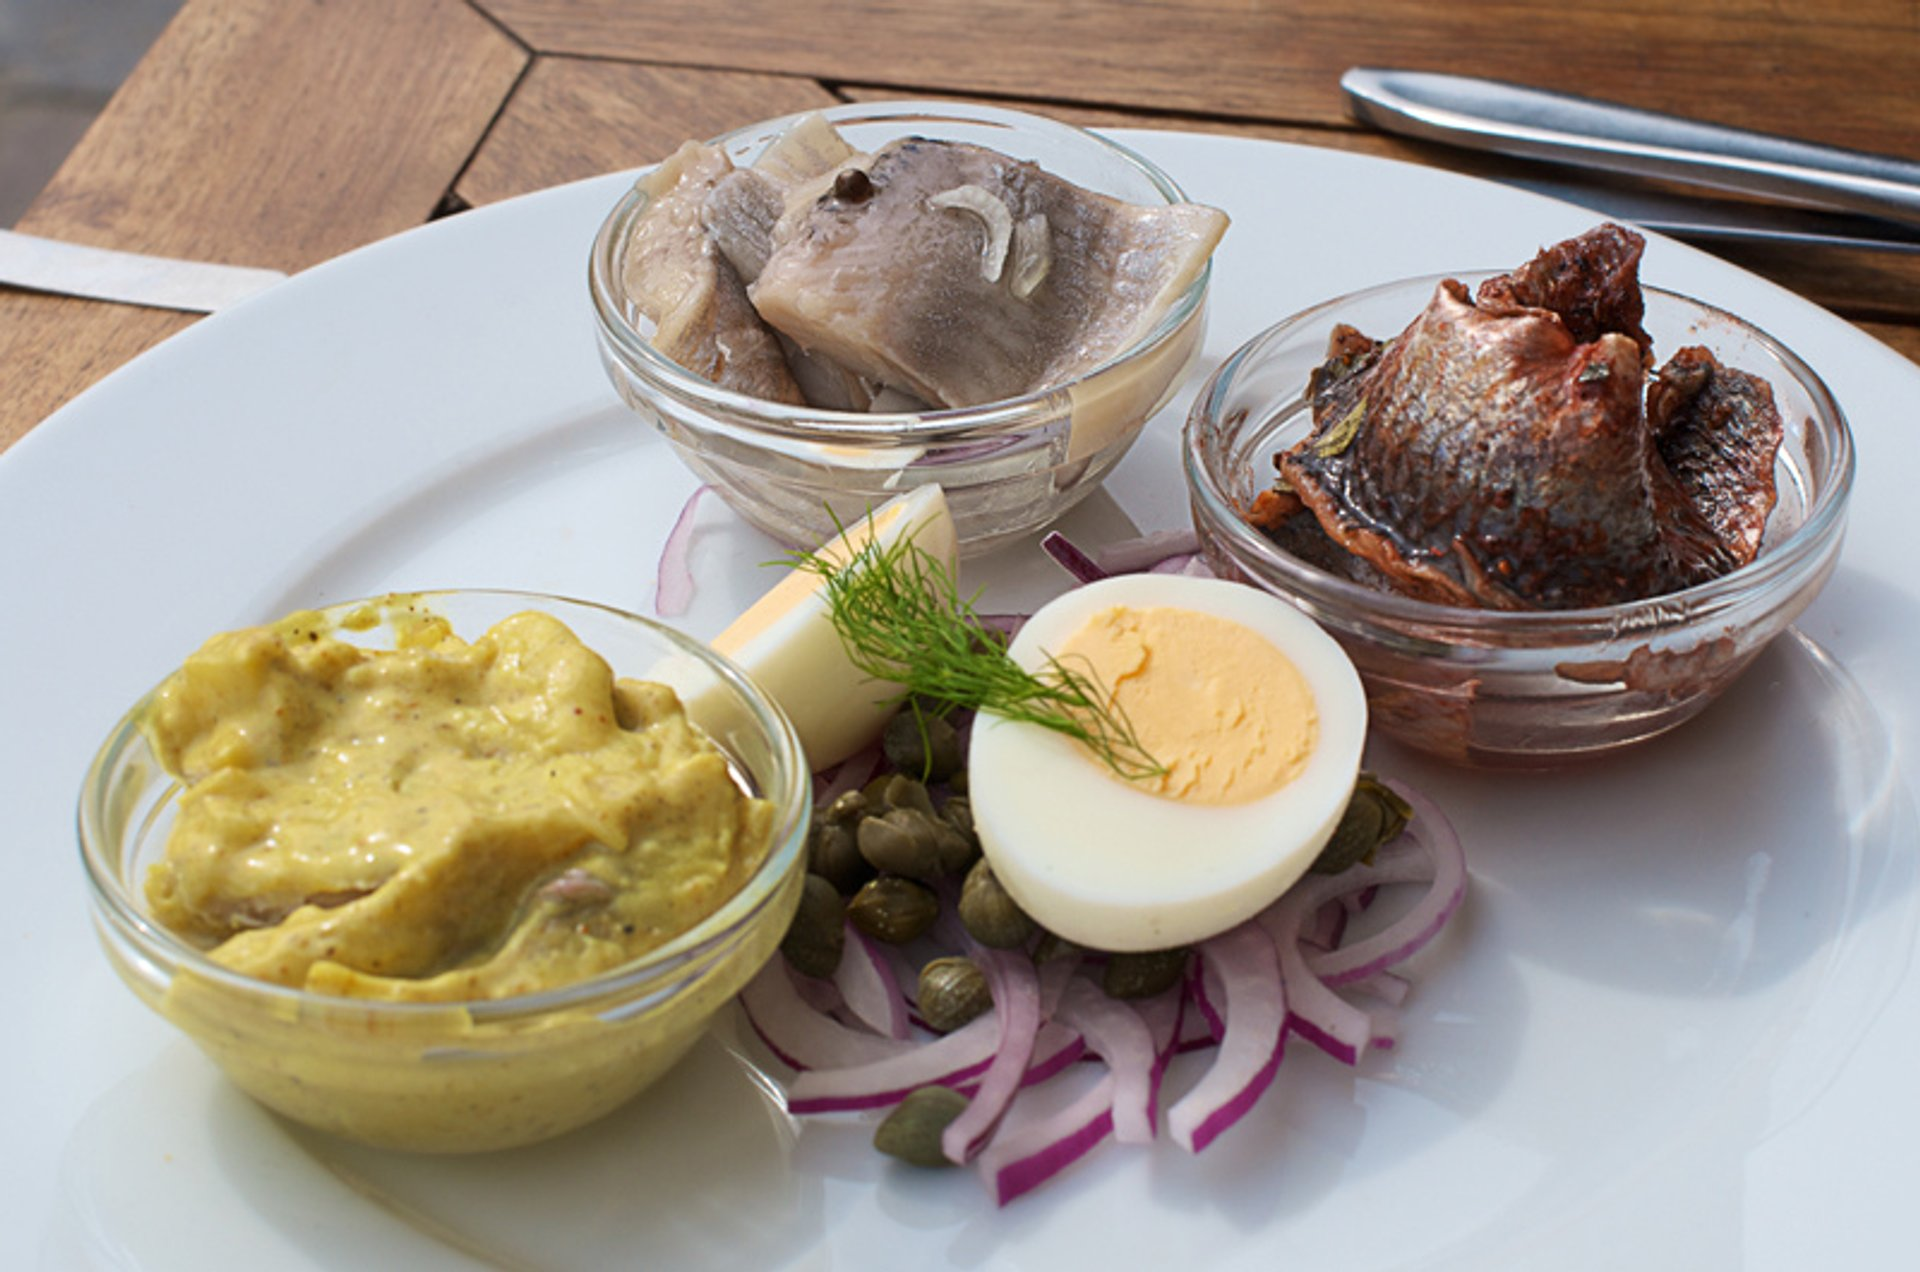 Pickled Herring in Denmark - Best Season 2020